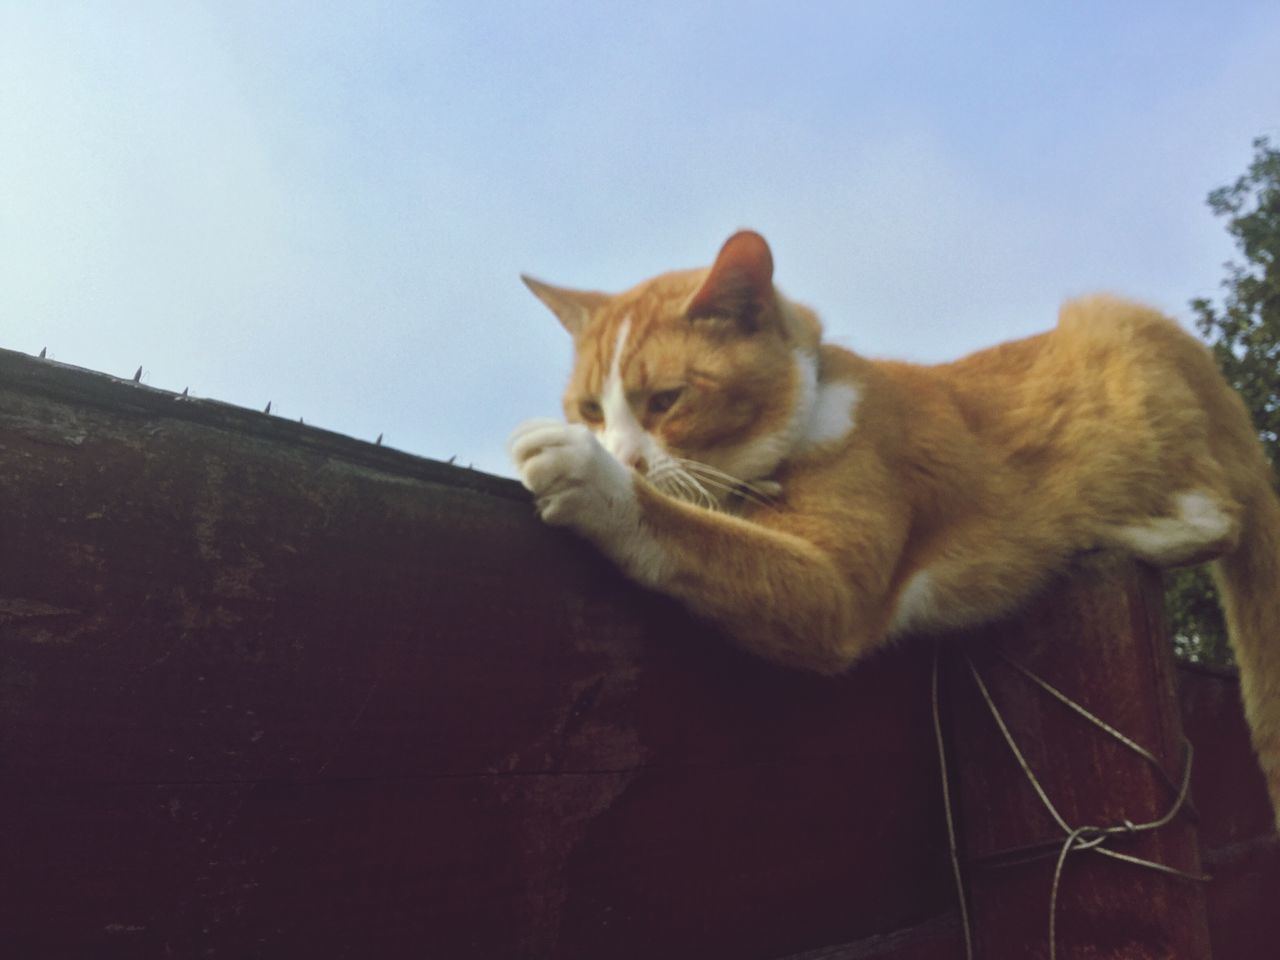 domestic cat, domestic animals, pets, feline, animal themes, one animal, mammal, cat, no people, whisker, day, low angle view, relaxation, sitting, outdoors, ginger cat, sky, close-up, nature